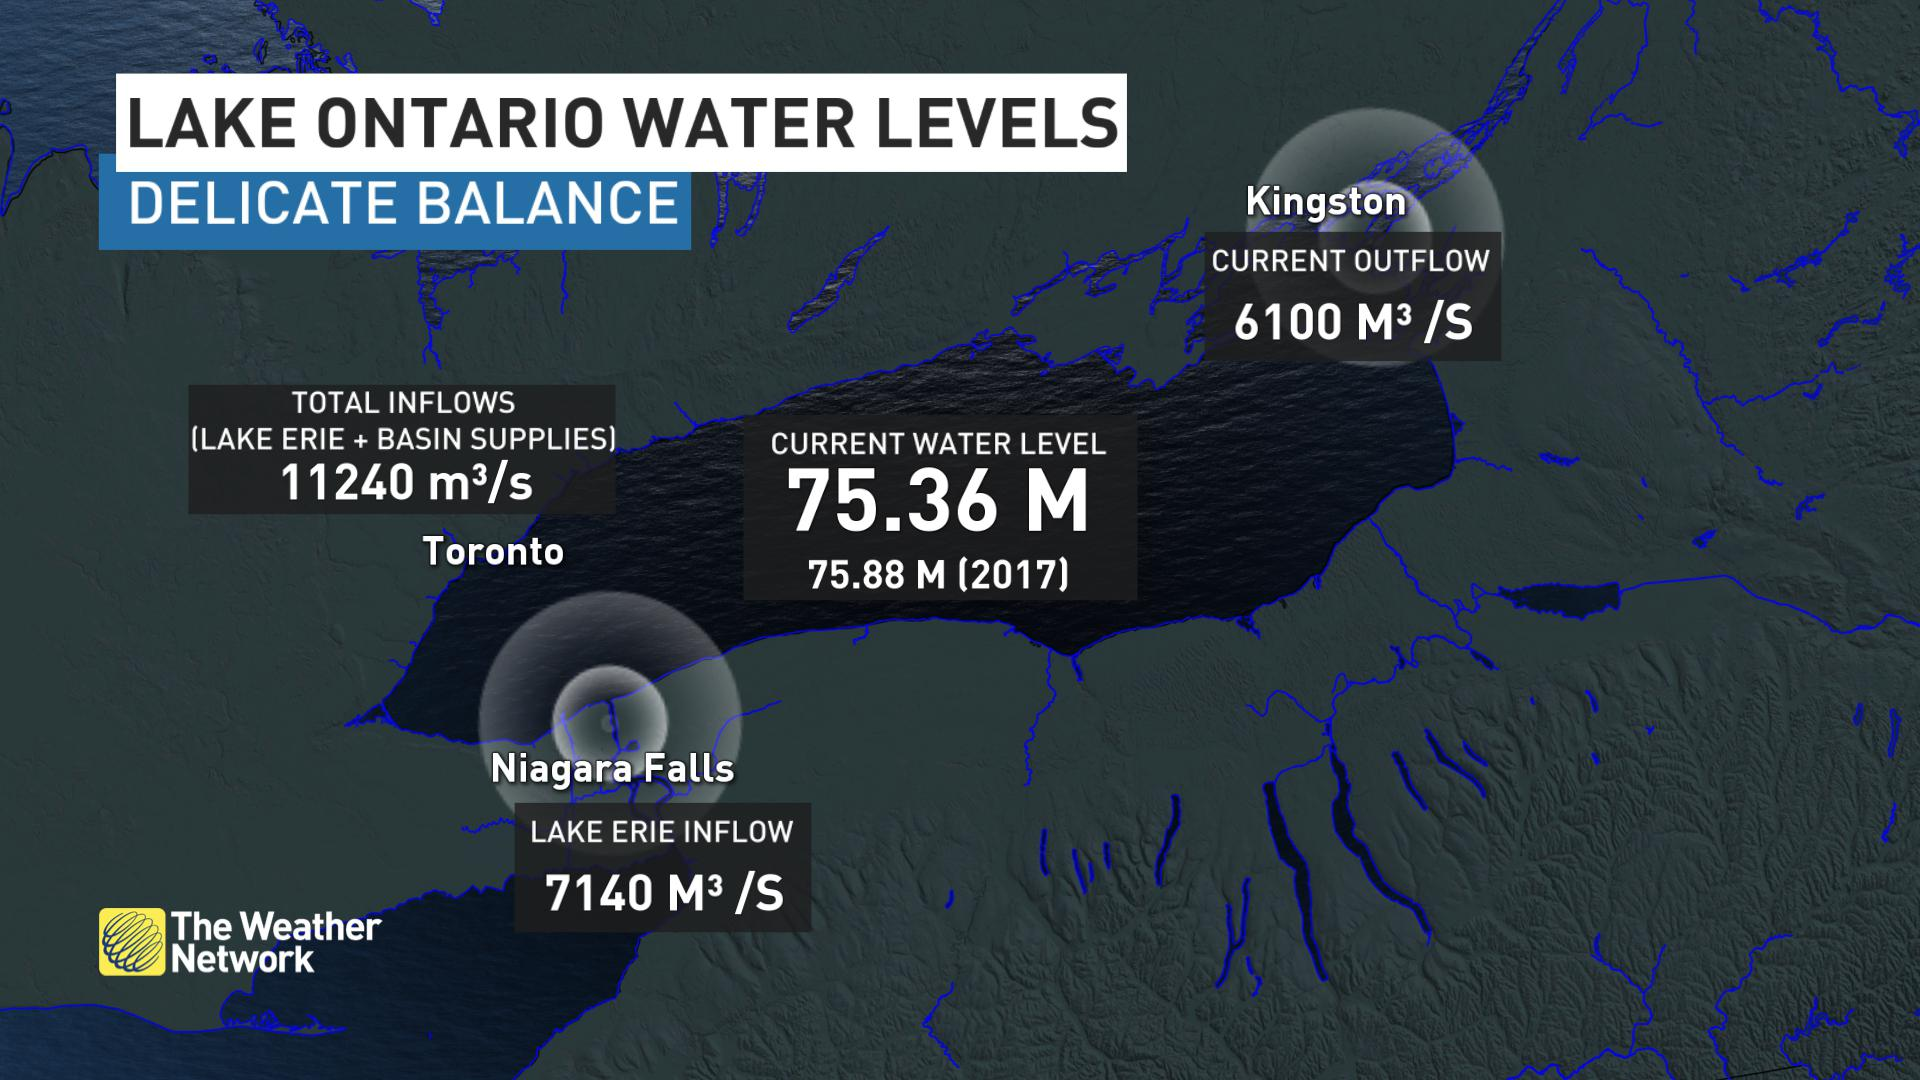 Shoreline hazard warning in effect for Lake Ontario as water levels rise